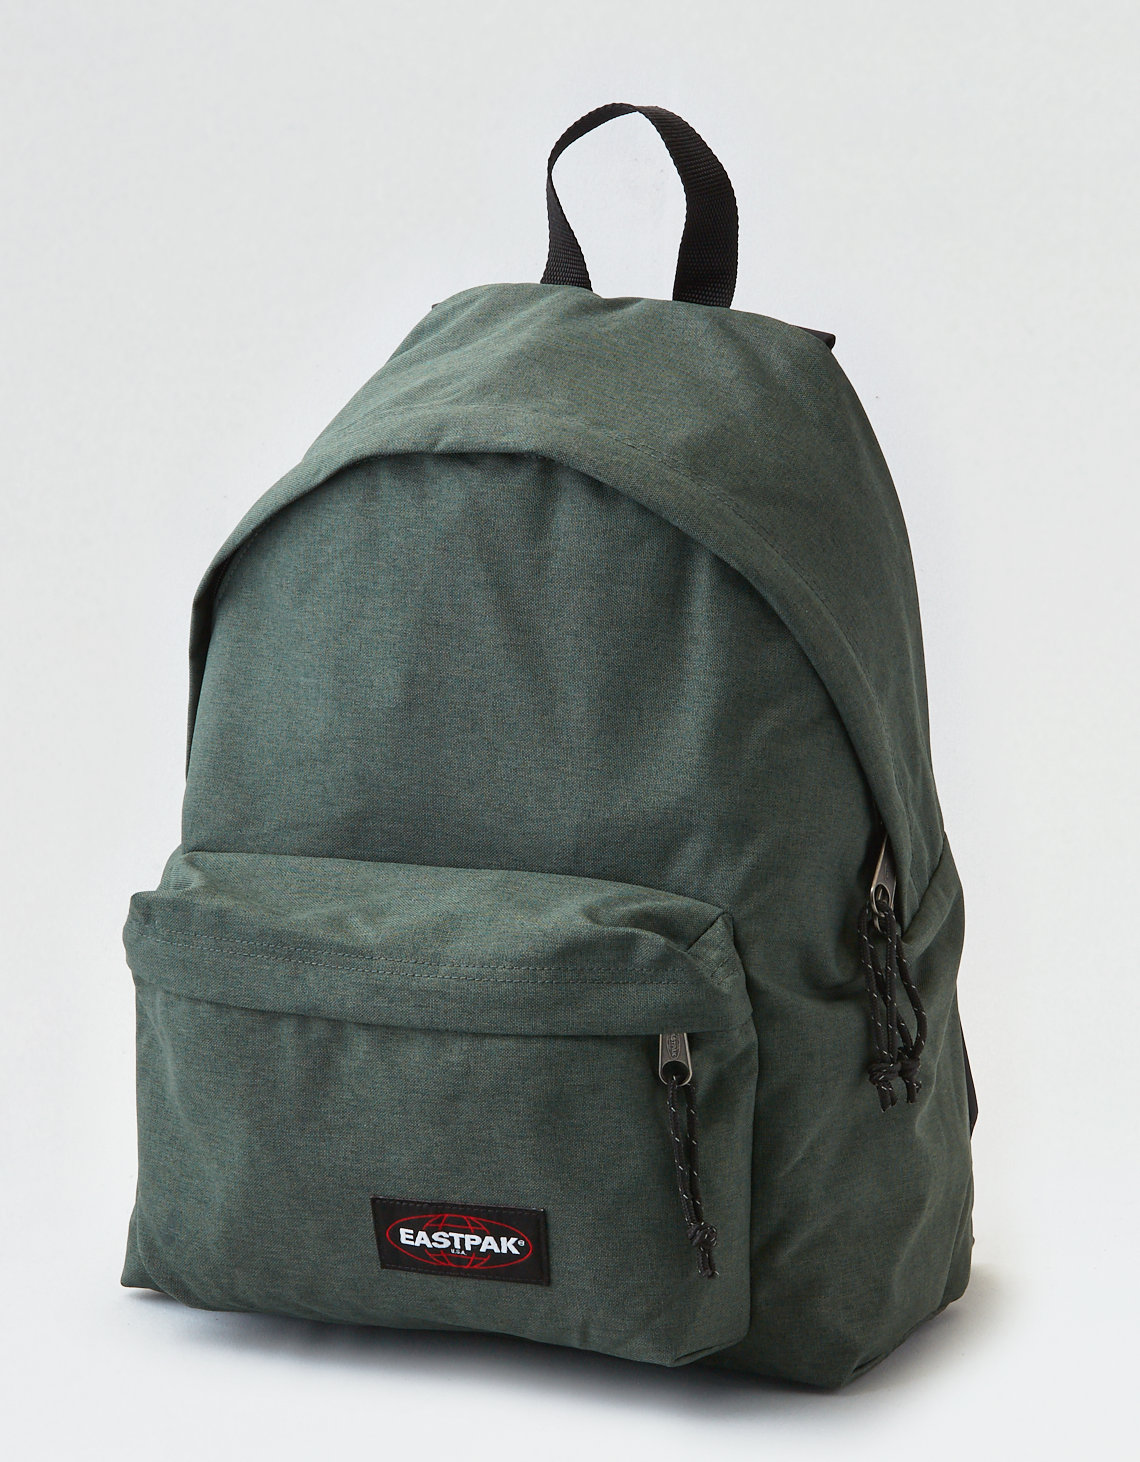 6674dd98996 Eastpak Padded Pak'r Backpack, Green | American Eagle Outfitters